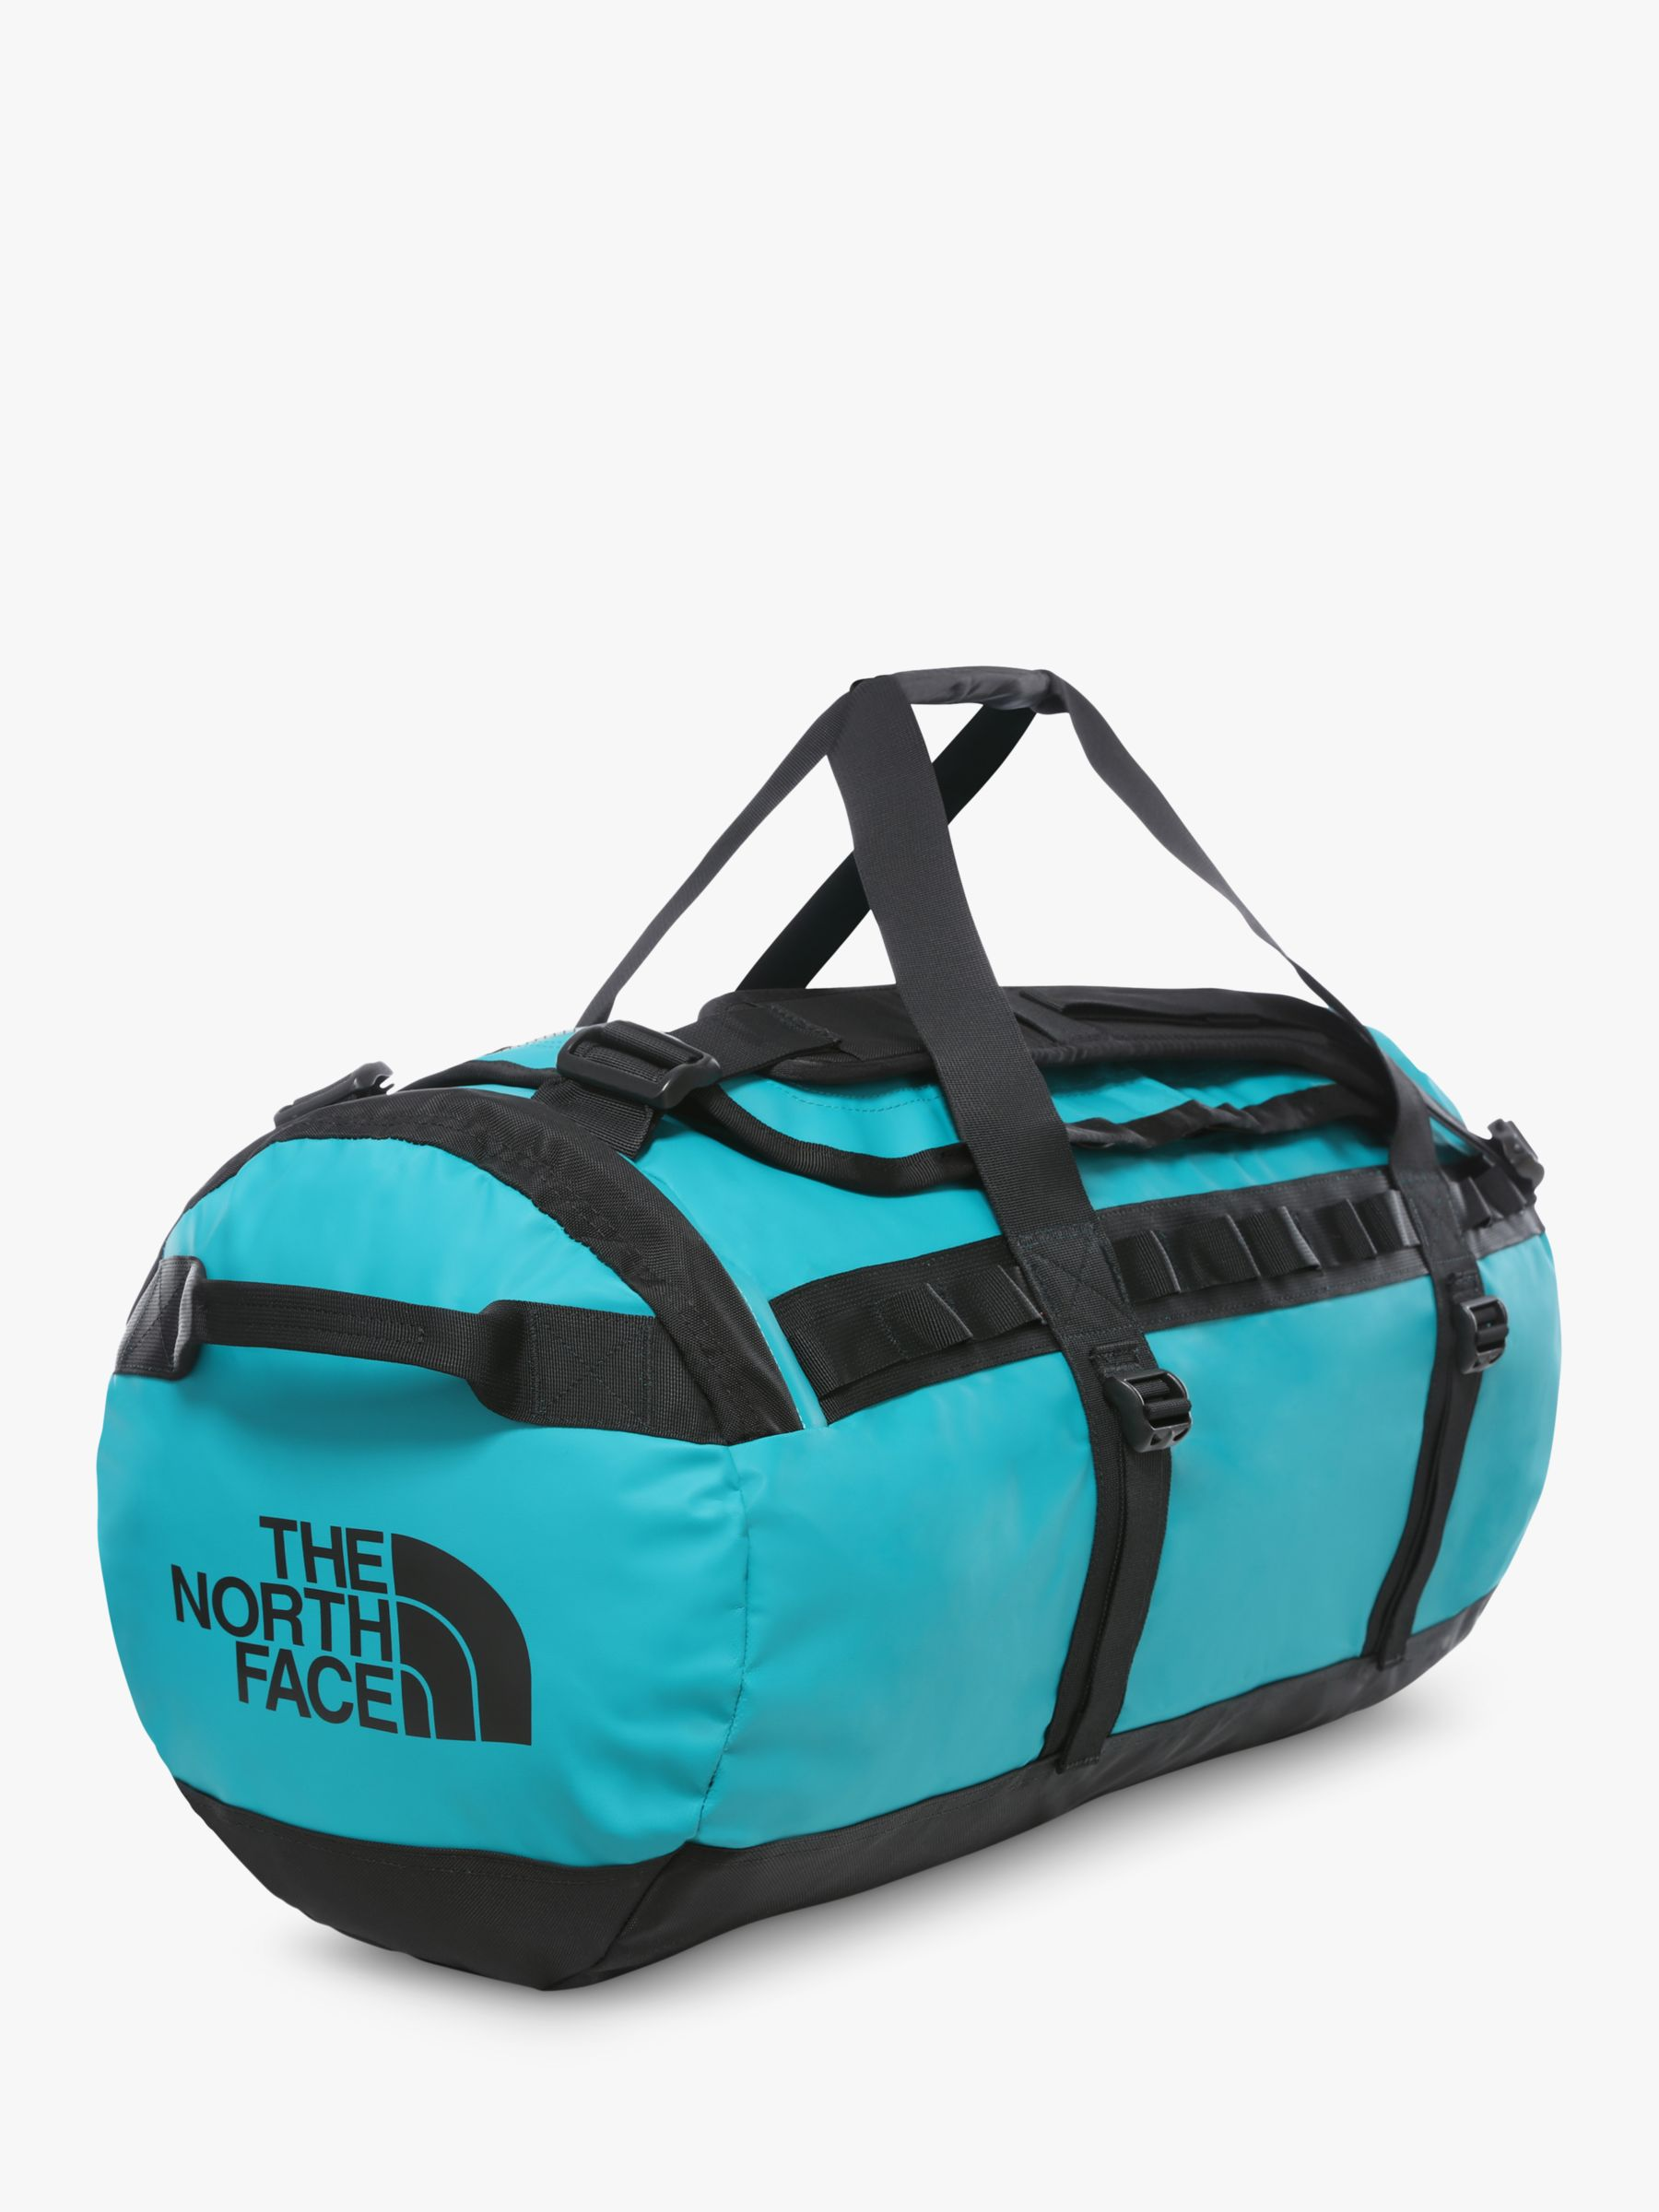 The North Face The North Face Base Camp Duffel Bag, Medium, Fanfare Green/TNF Black